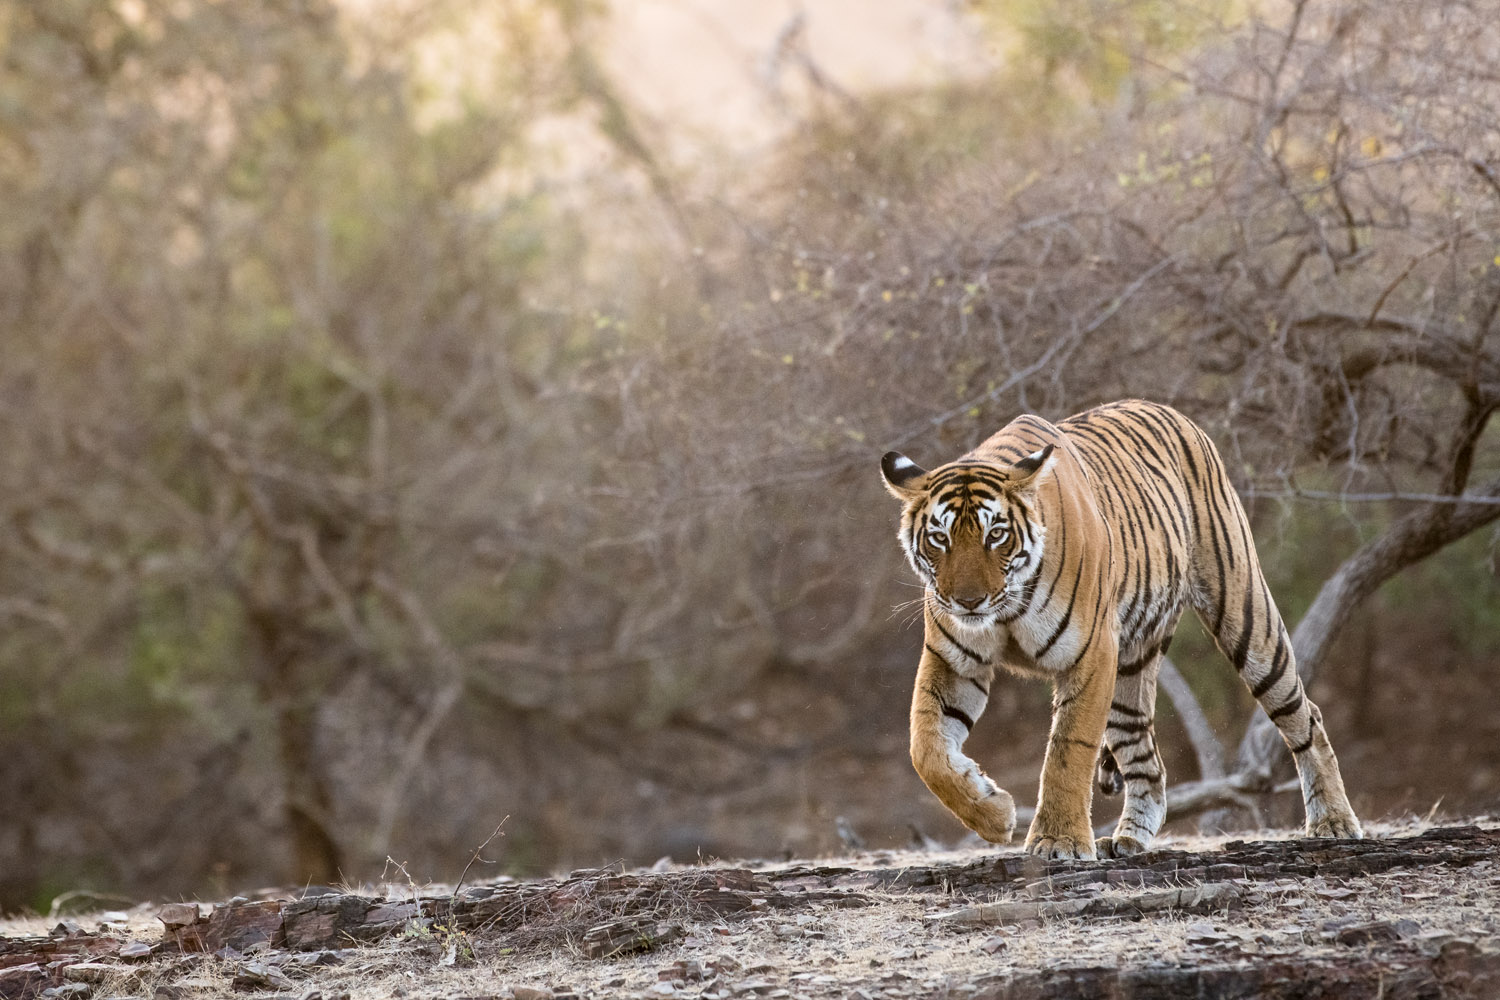 Bengal tigress on the move at dusk, Ranthambhore National Park, Rajasthan, India